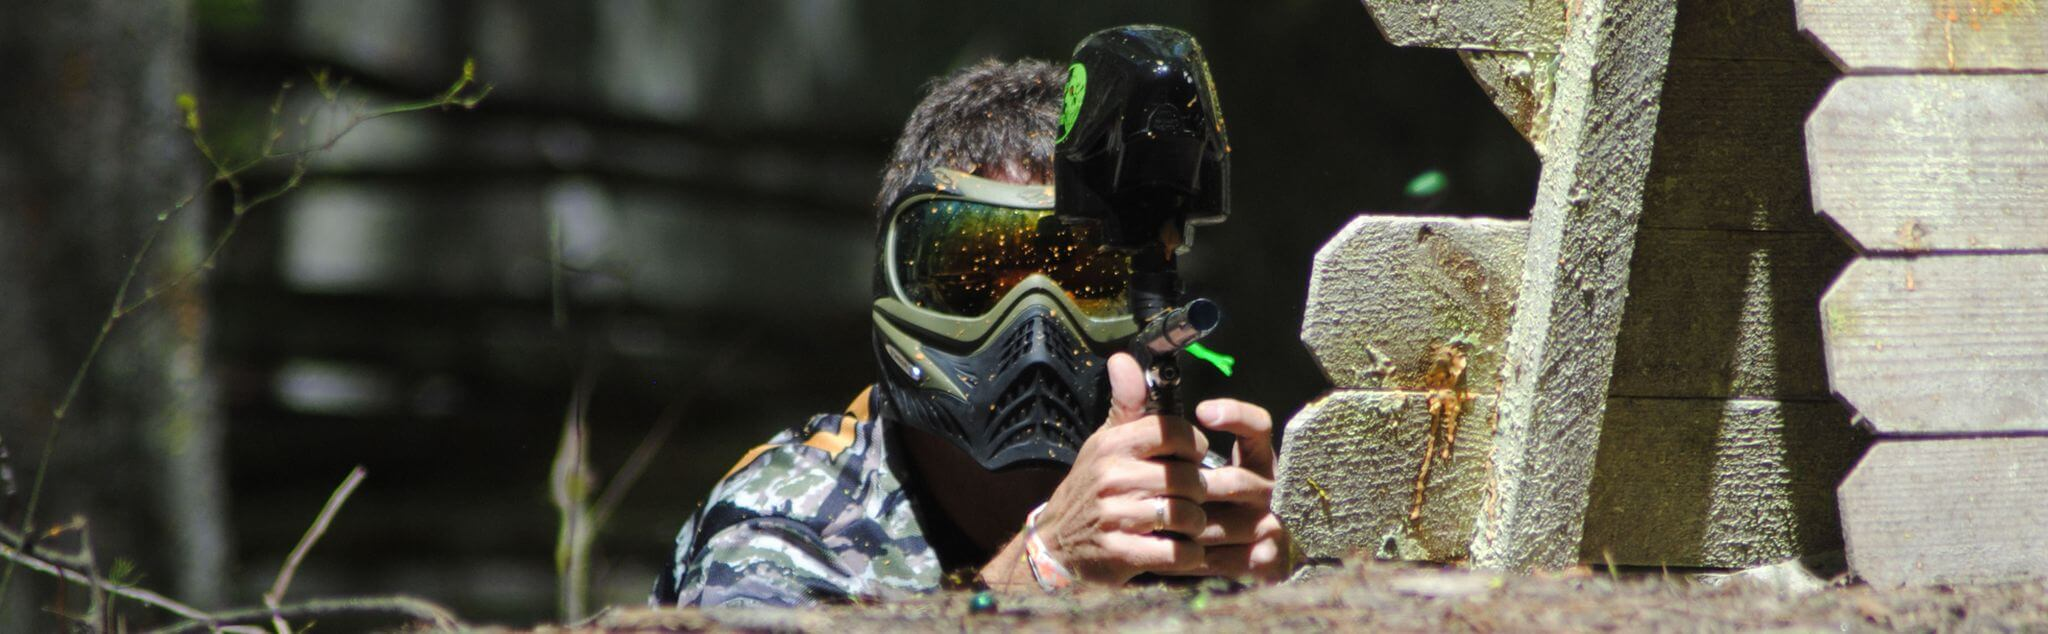 Paintball dans Landes